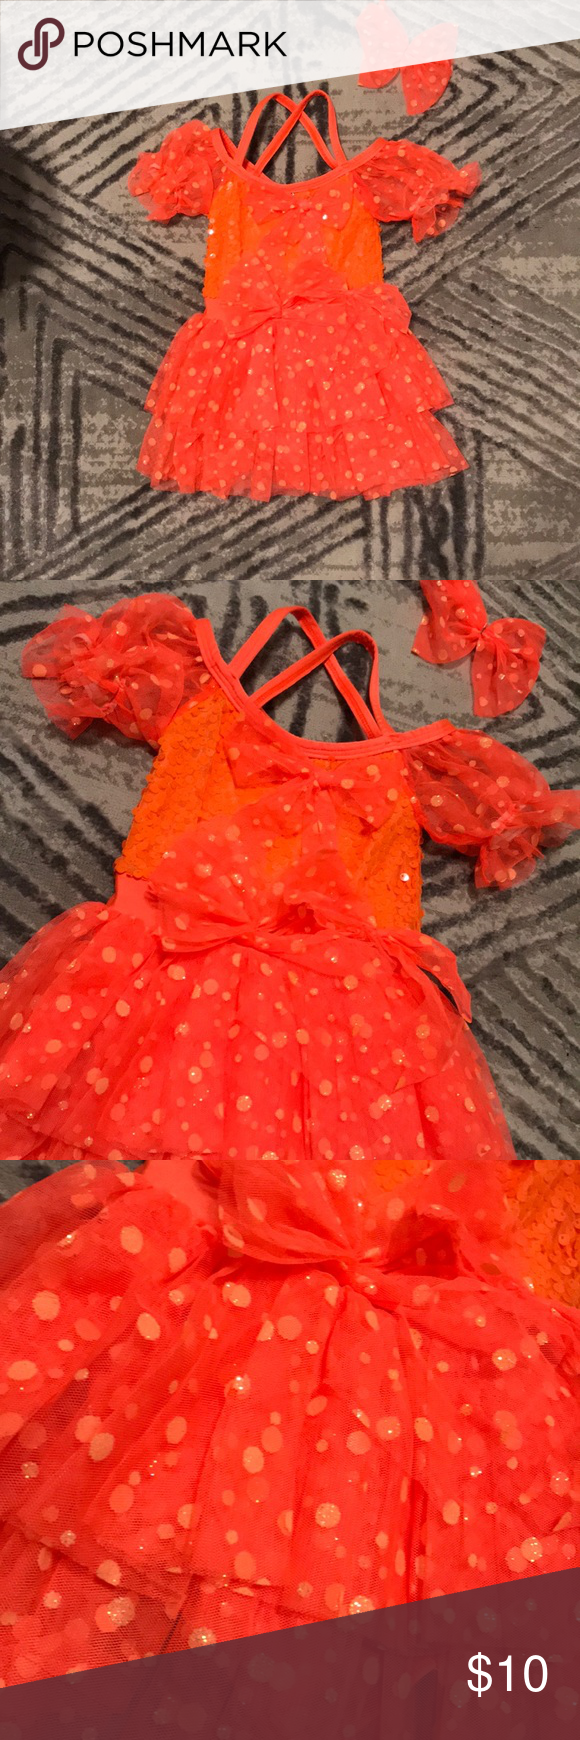 603a728e0 Recital Dress-Orange w  Polka Dots and Bow Details in 2018